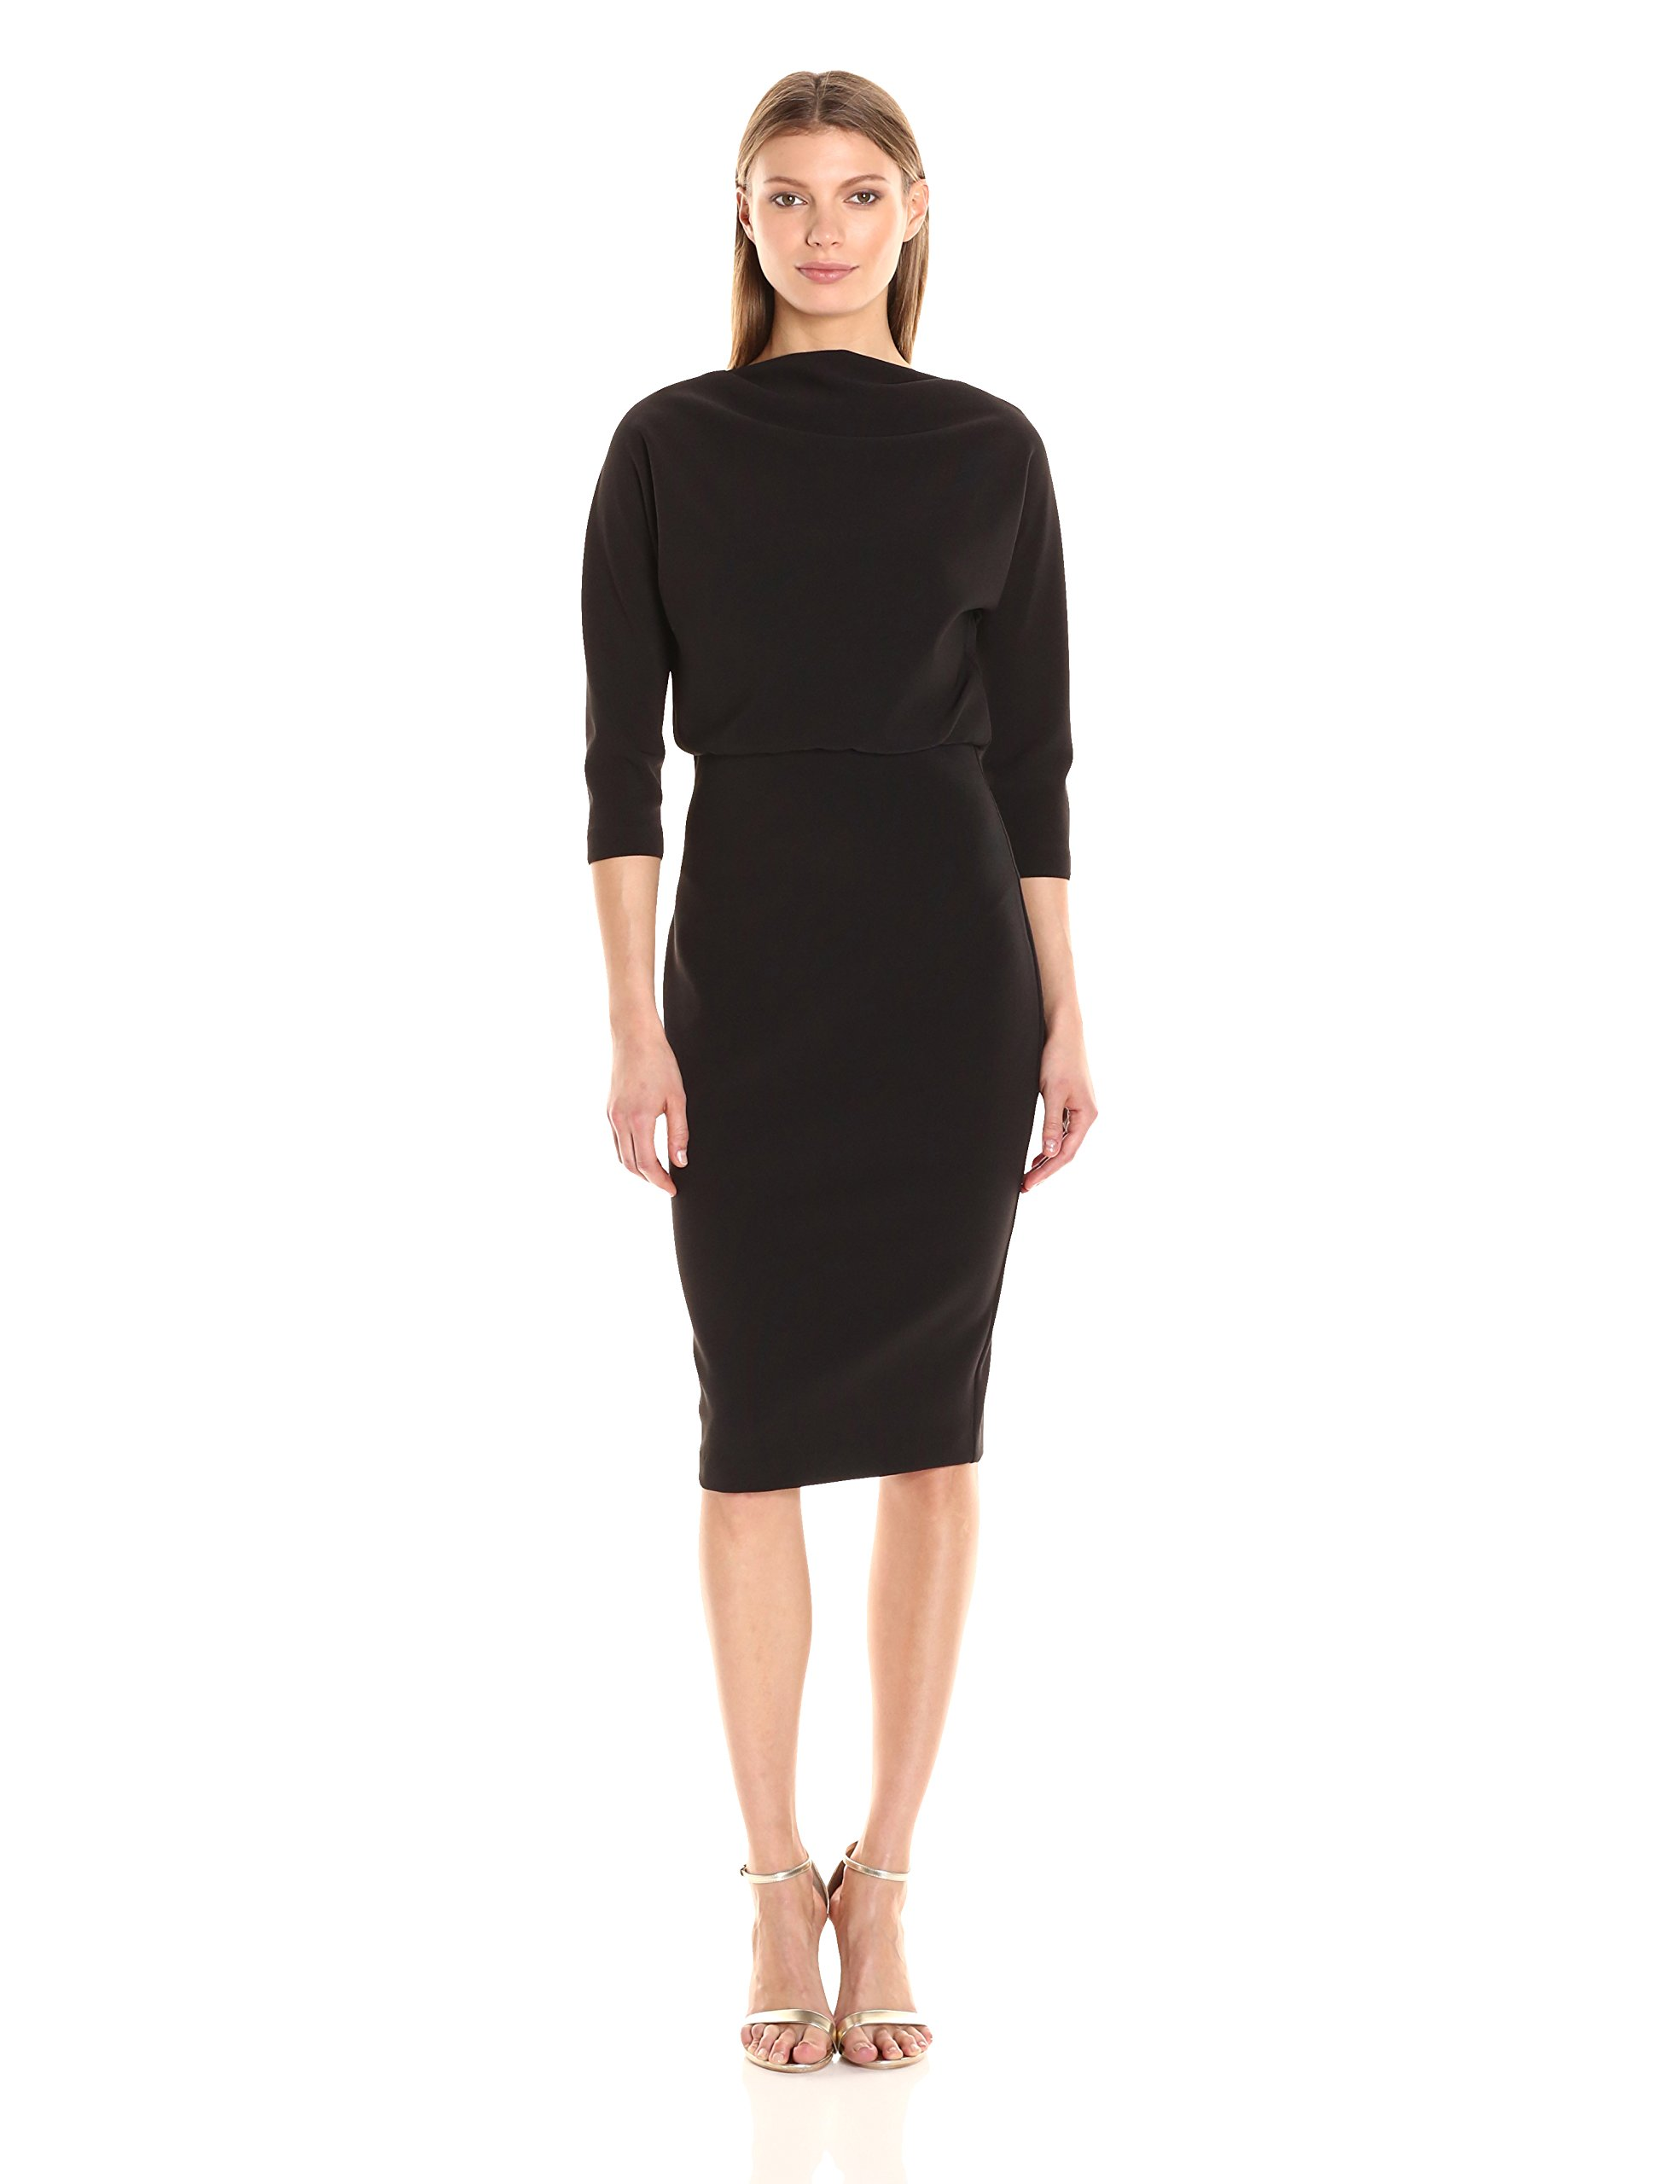 Badgley Mischka Women's 3/4 Sleeve Blouson Dress, Black, M